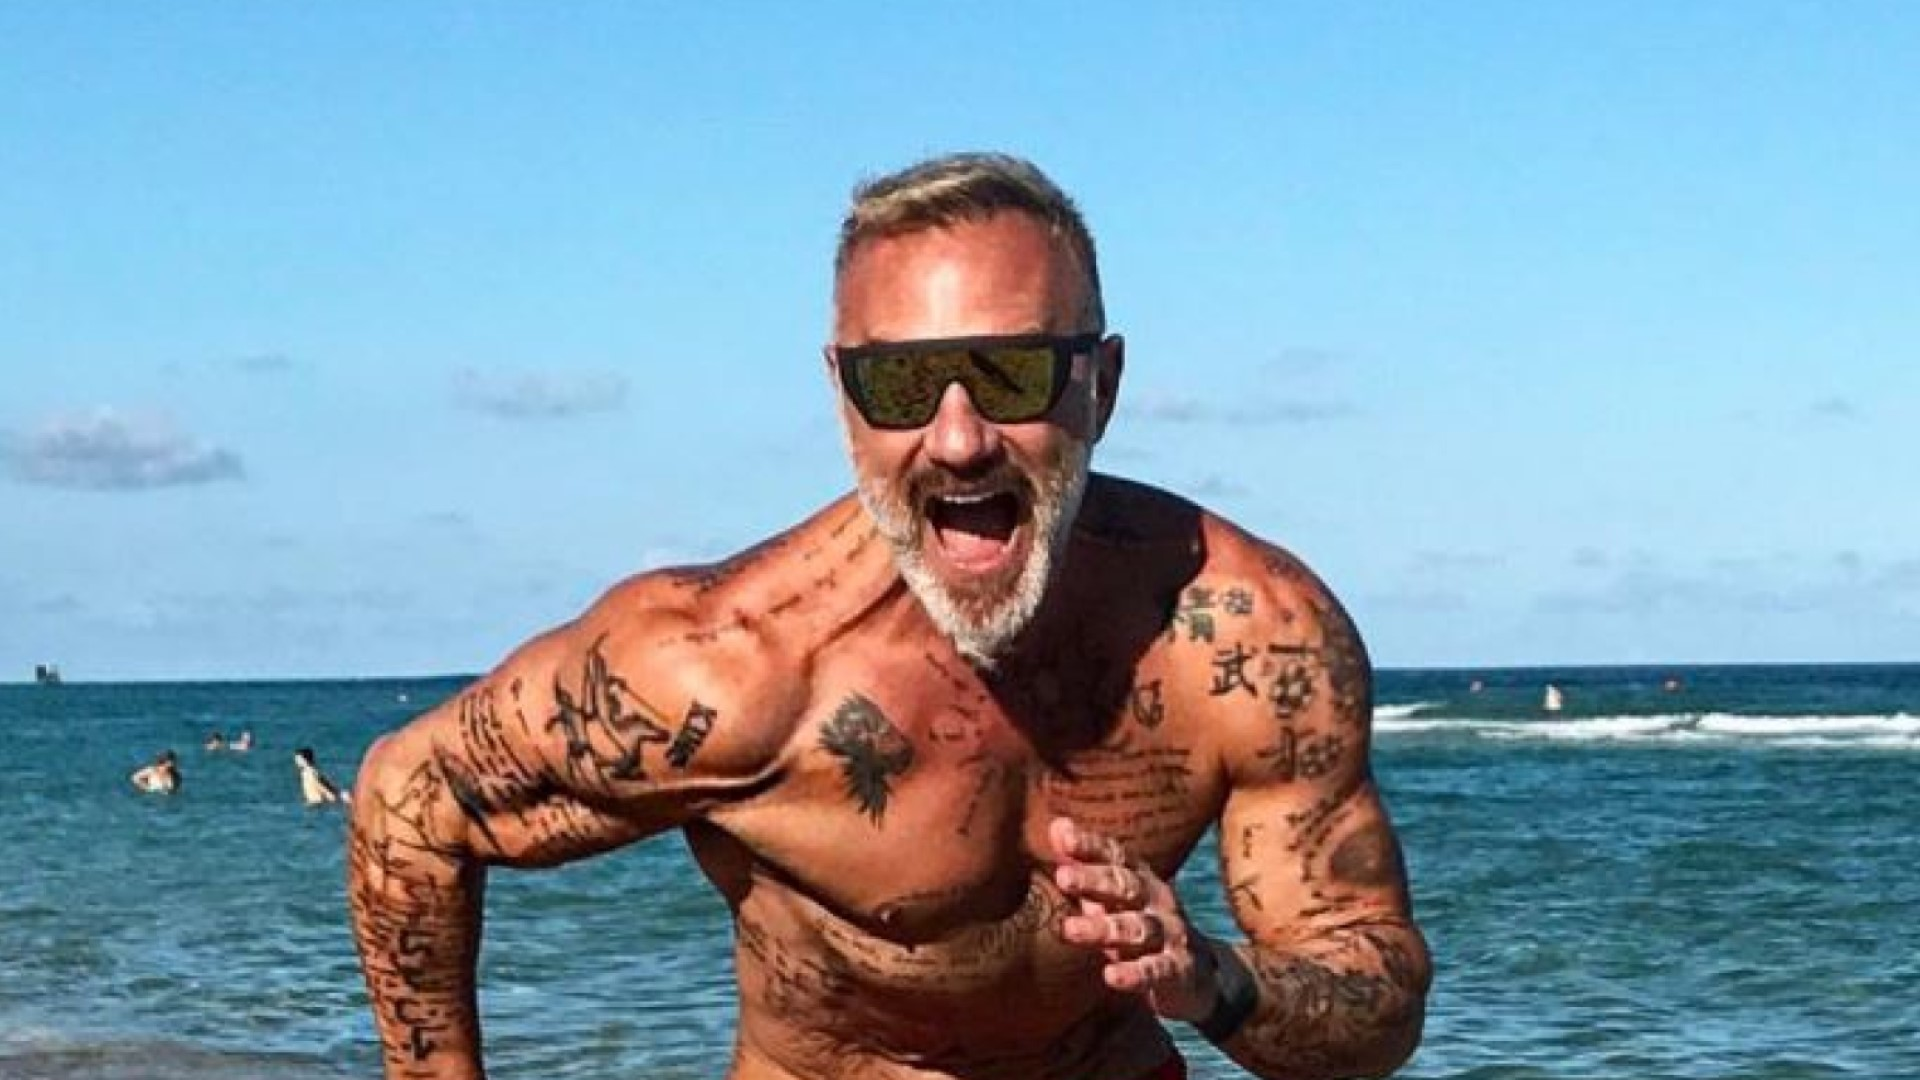 Gianluca Vacchi, dancing millionaire and Instagram king: where is he now?